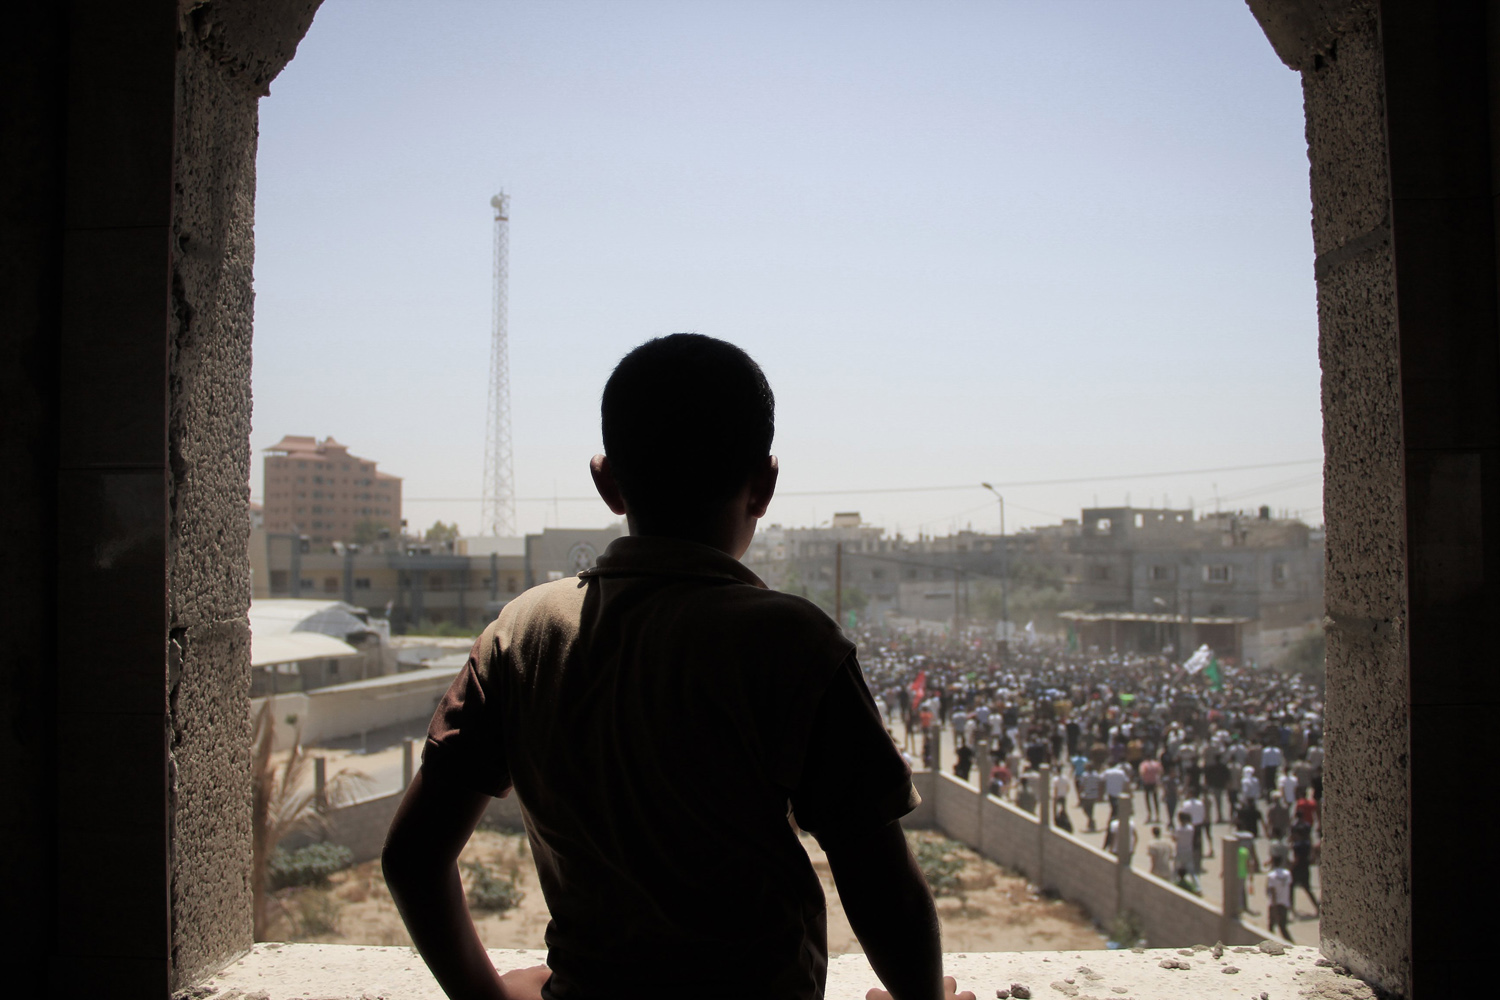 Aug. 21, 2014. A young Palestinian boy watches people gathering for the funeral of three top senior Hamas commanders, Mohammed Abu Shamala, Mohammed Barhoum and Raed al-Attar, all three are believed to have died overnight in ongoing Israeli airstrikes on Rafah.